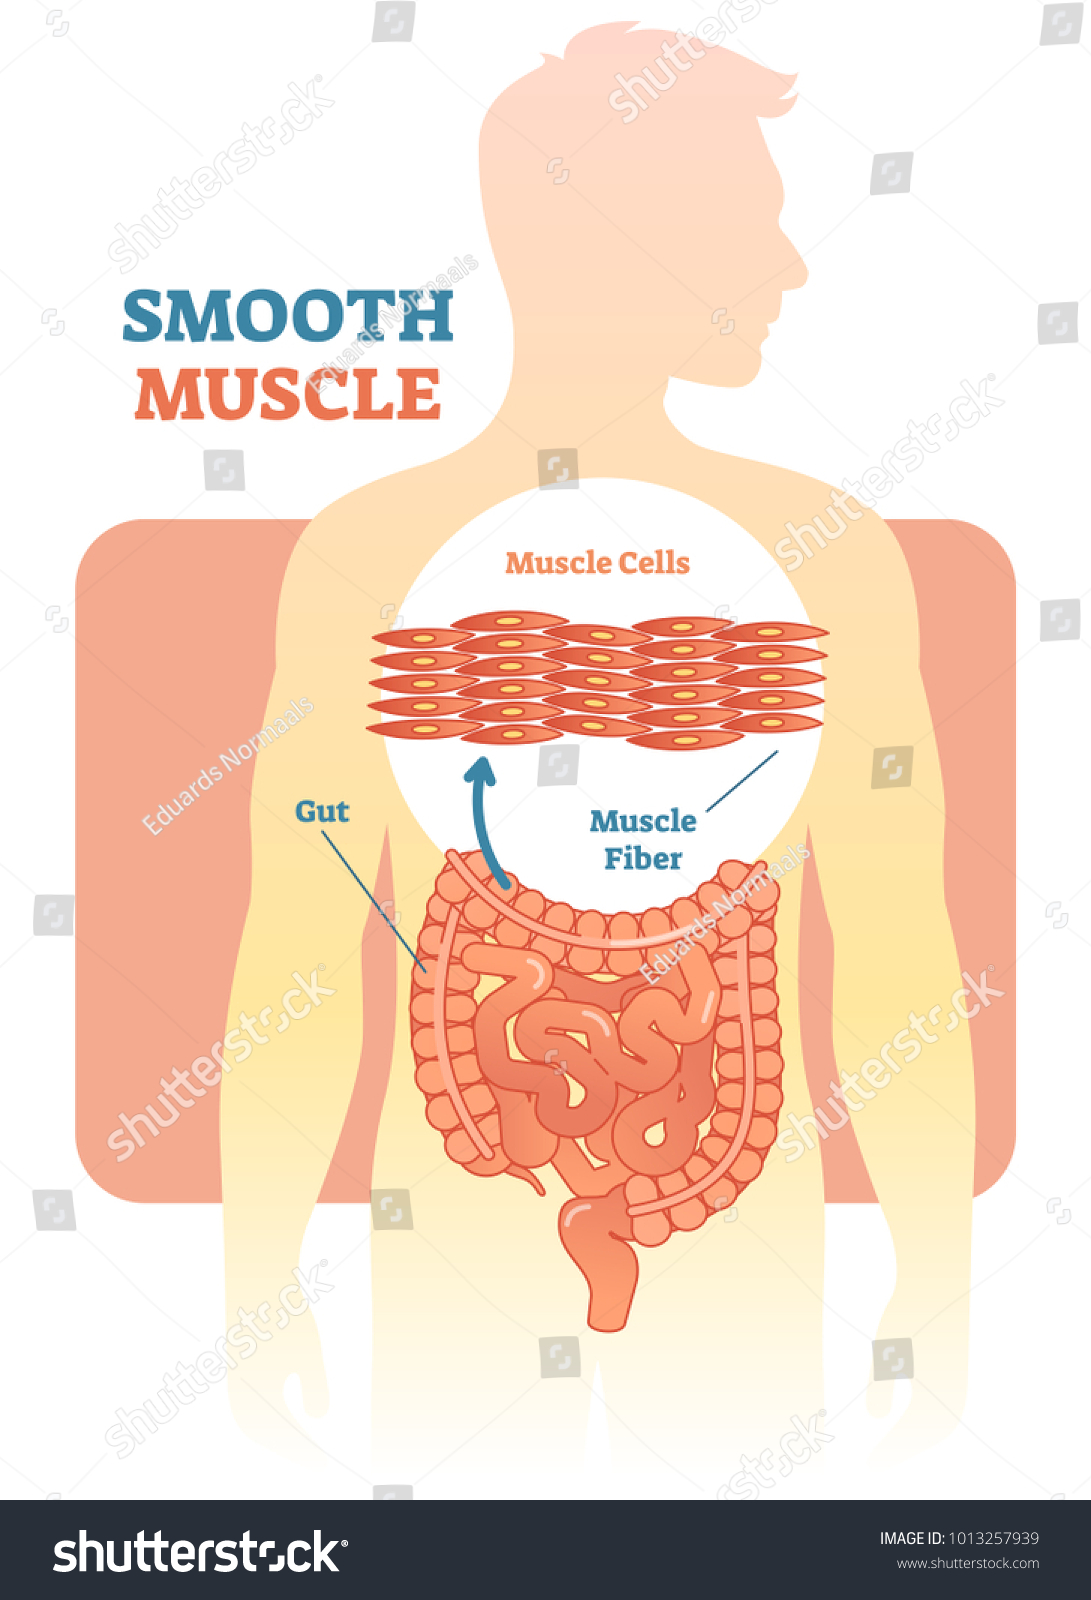 Smooth Muscle Vector Illustration Diagram Anatomical Stock Vector ...